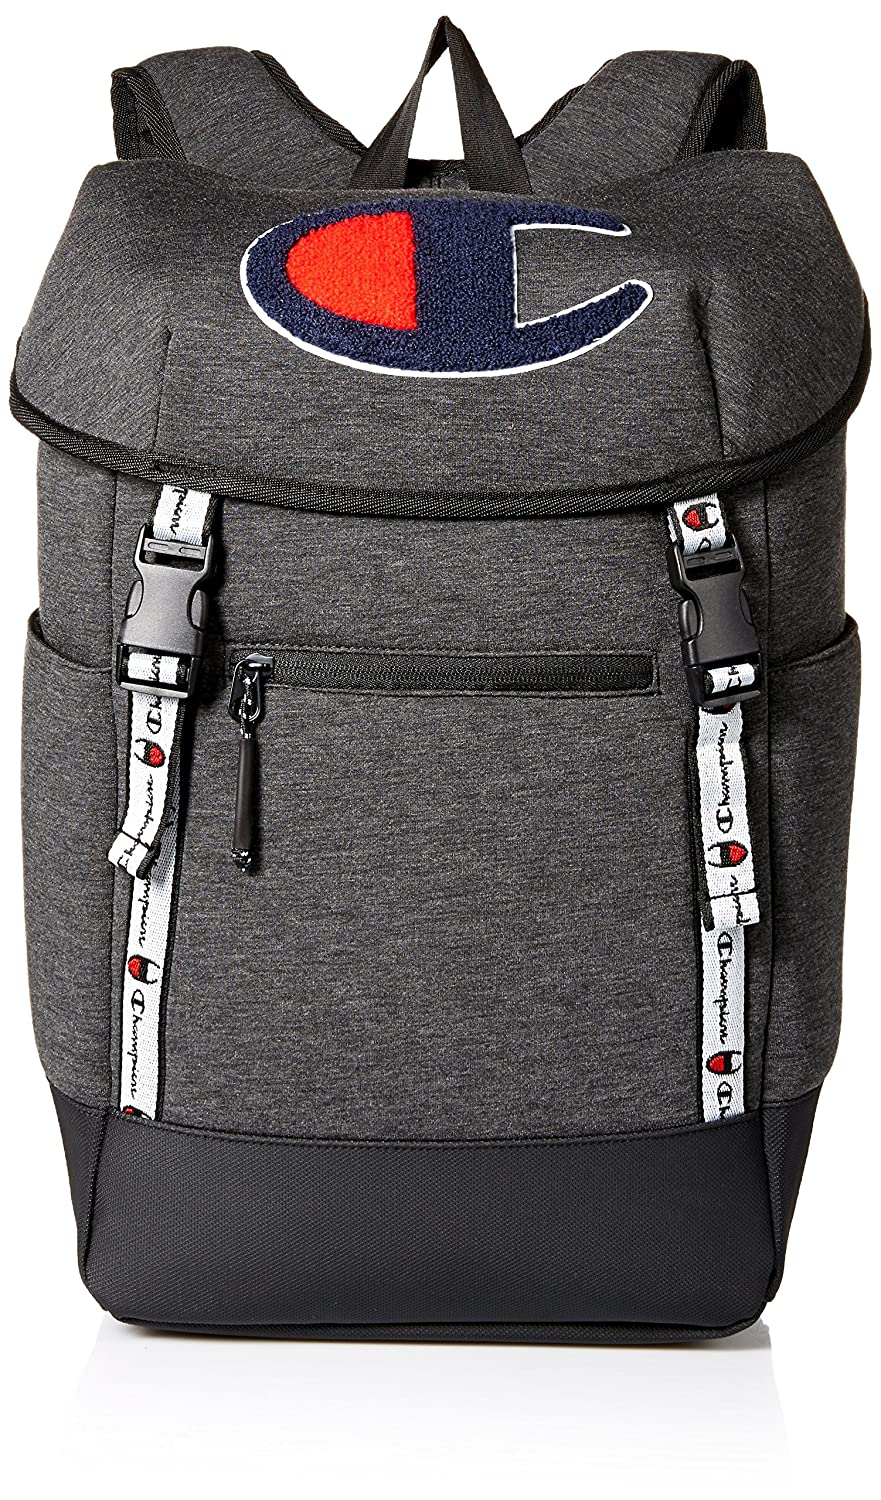 Champion Men's Top Load Backpack, Dark Grey, OS CH1027-020